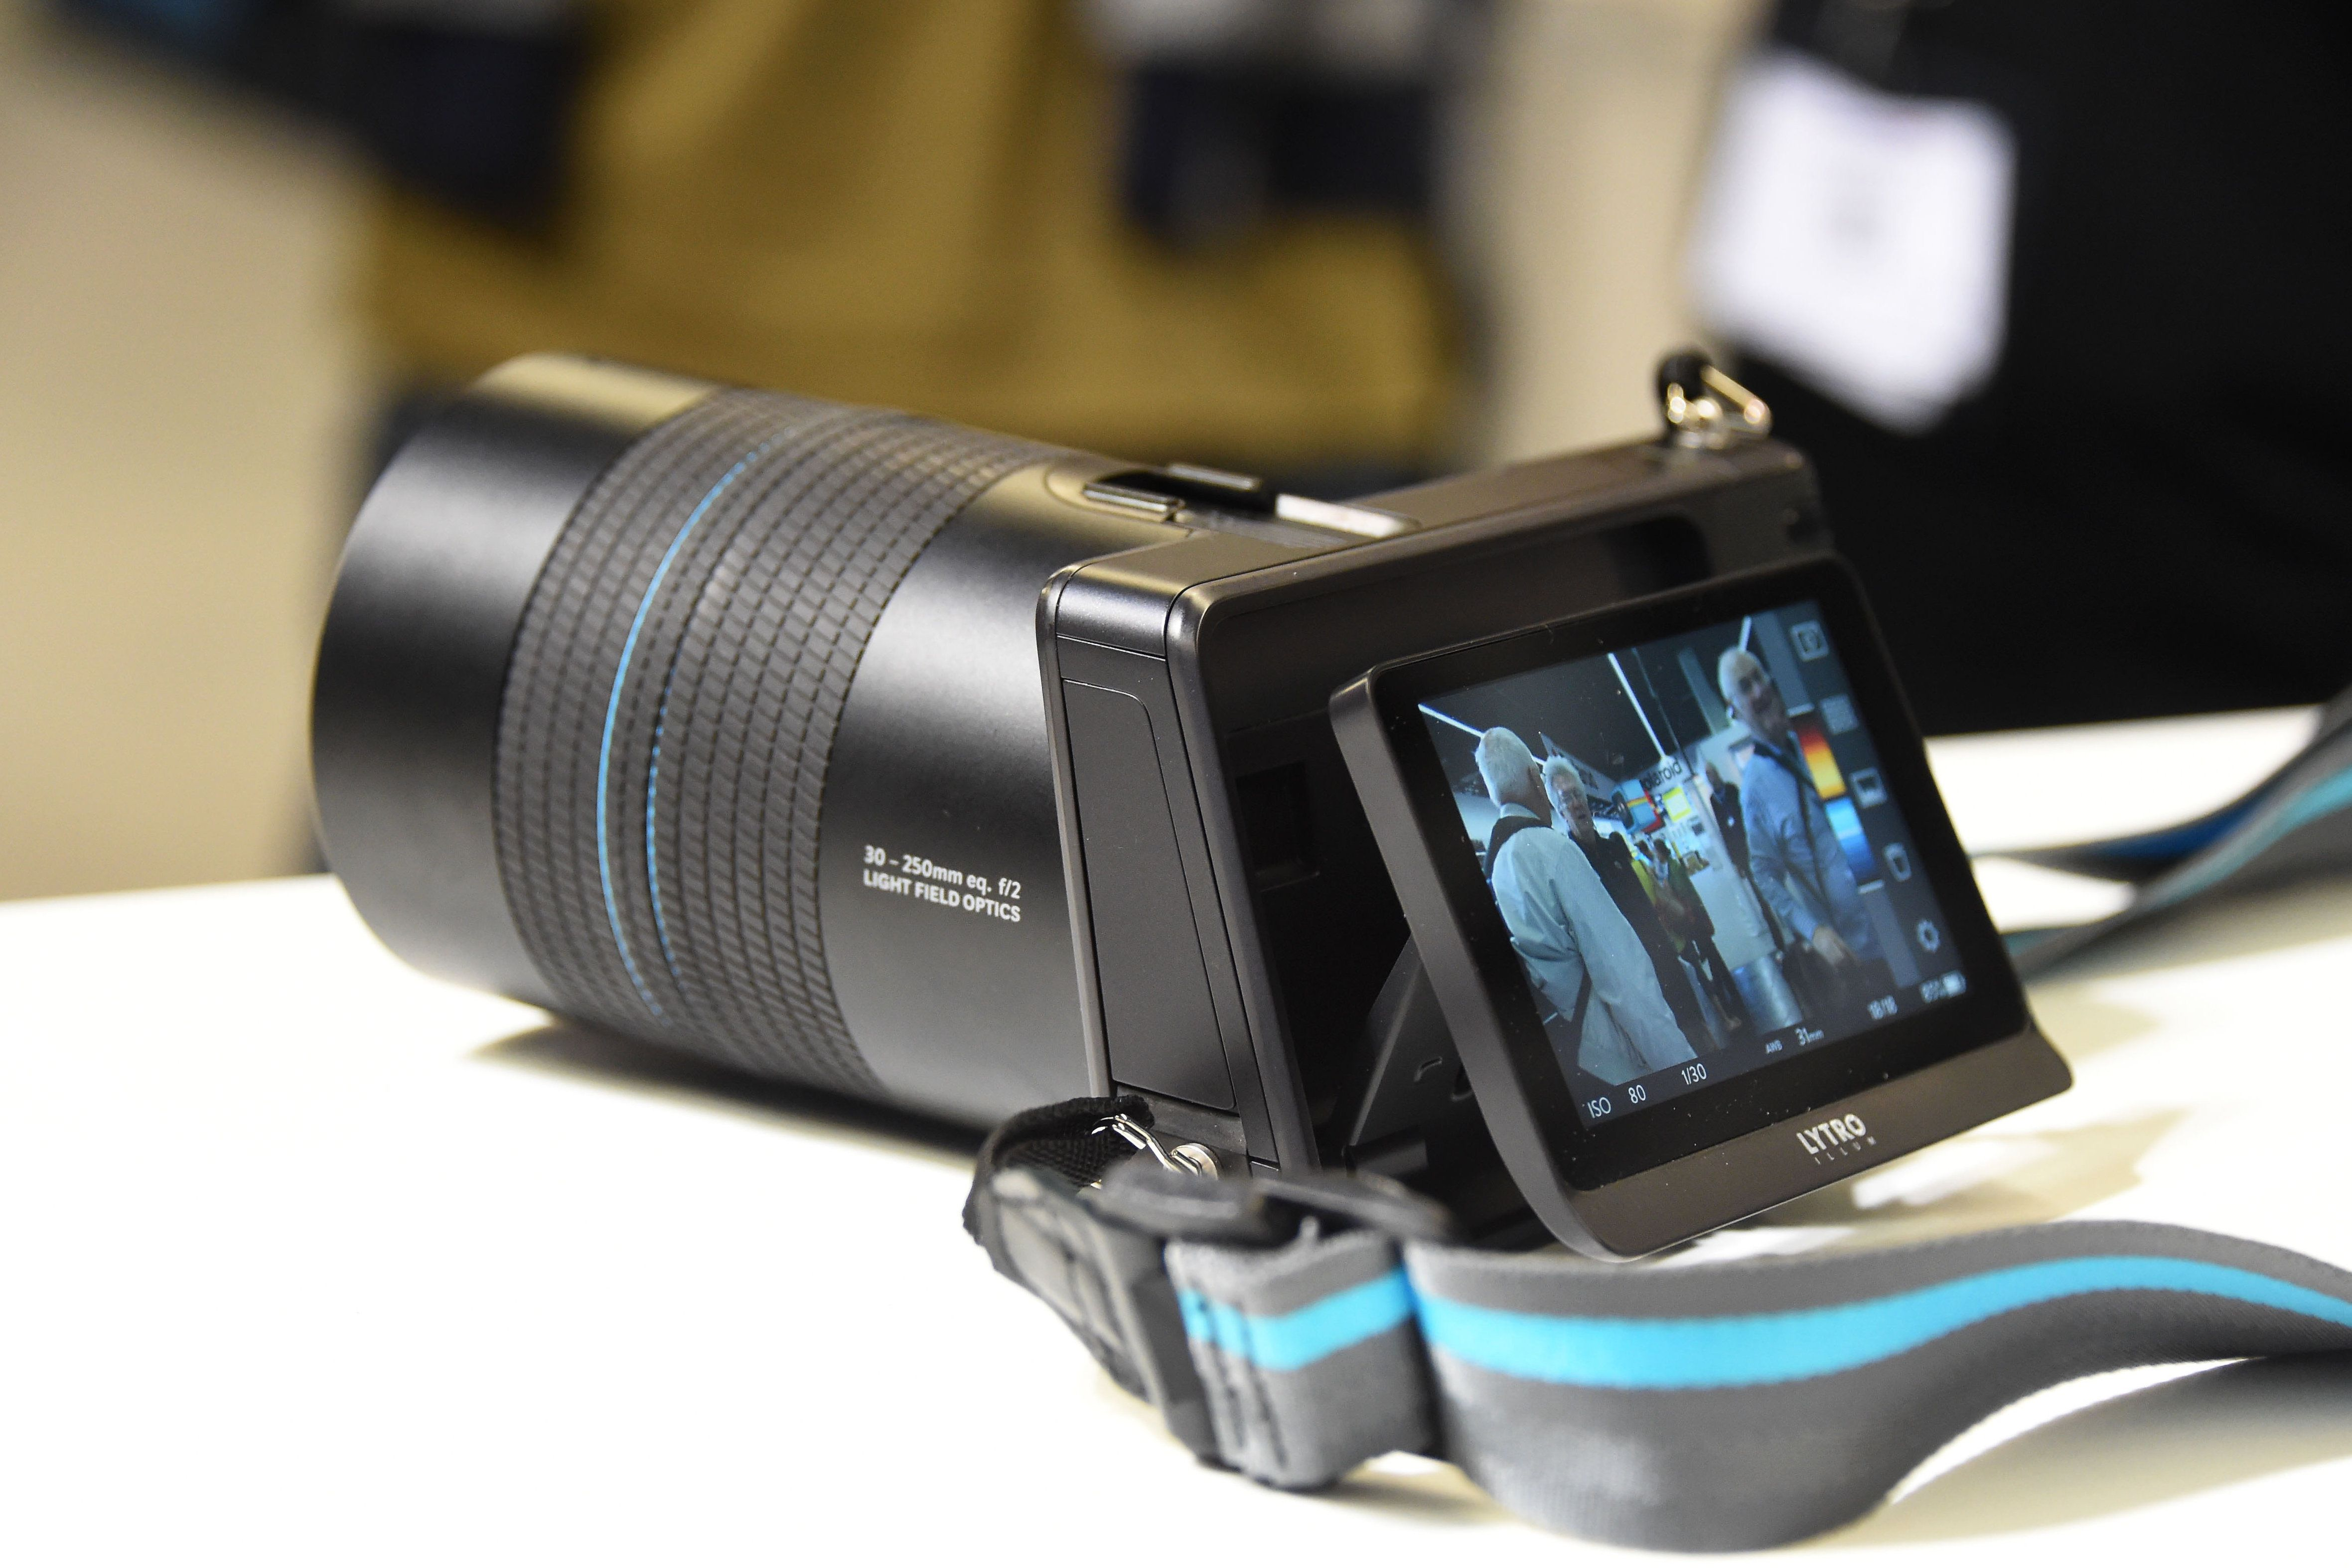 Lytro camera with strap on a white table